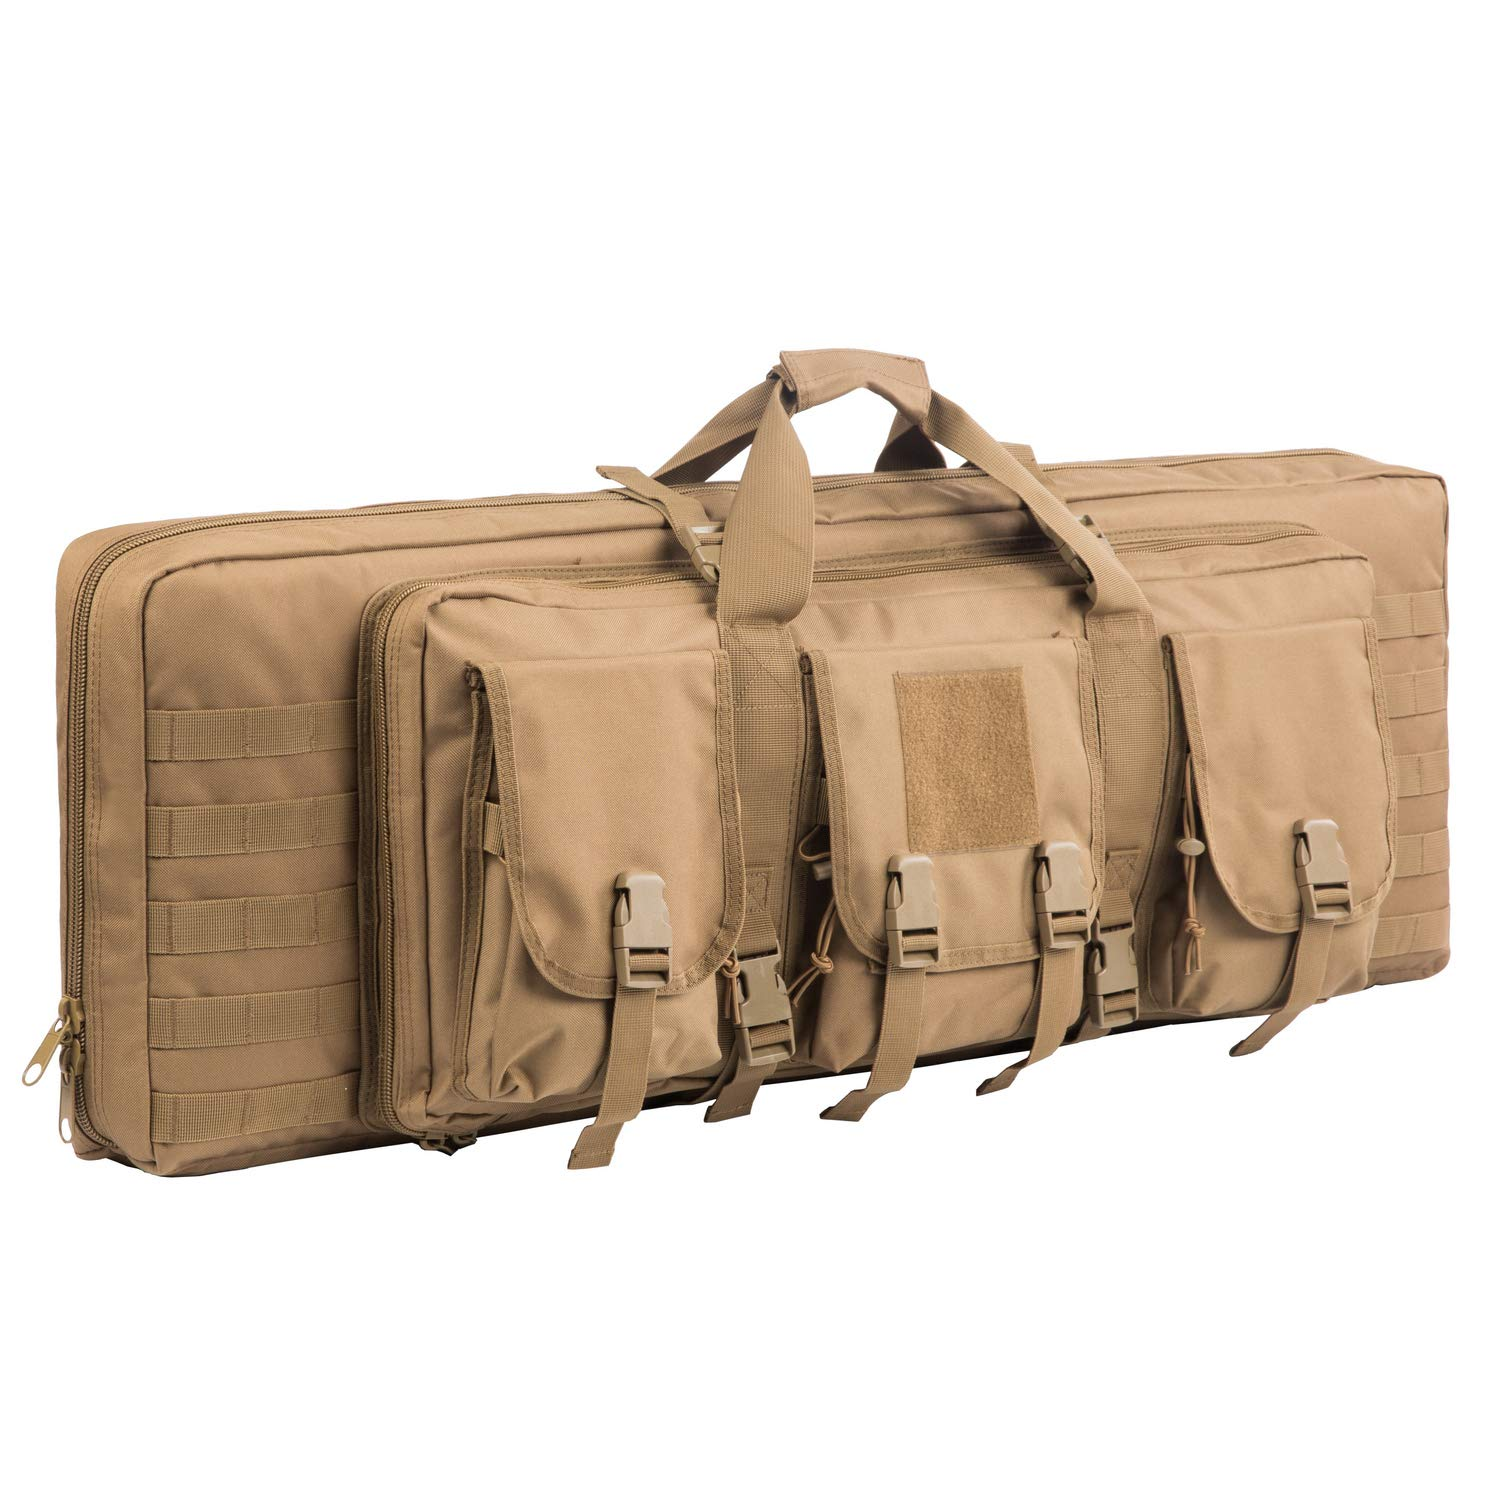 XWLSPORT AK47/AR16 Tactical Rifle Case Double Carbine Bag Outdoor Molle Deluxe Double Rifle Gun Bag Padded Long Gun Case & Rifle Storage Backpack(2 Sizes and 6 Colors to chooese from) (TAN, 42inch) by XWLSPORT